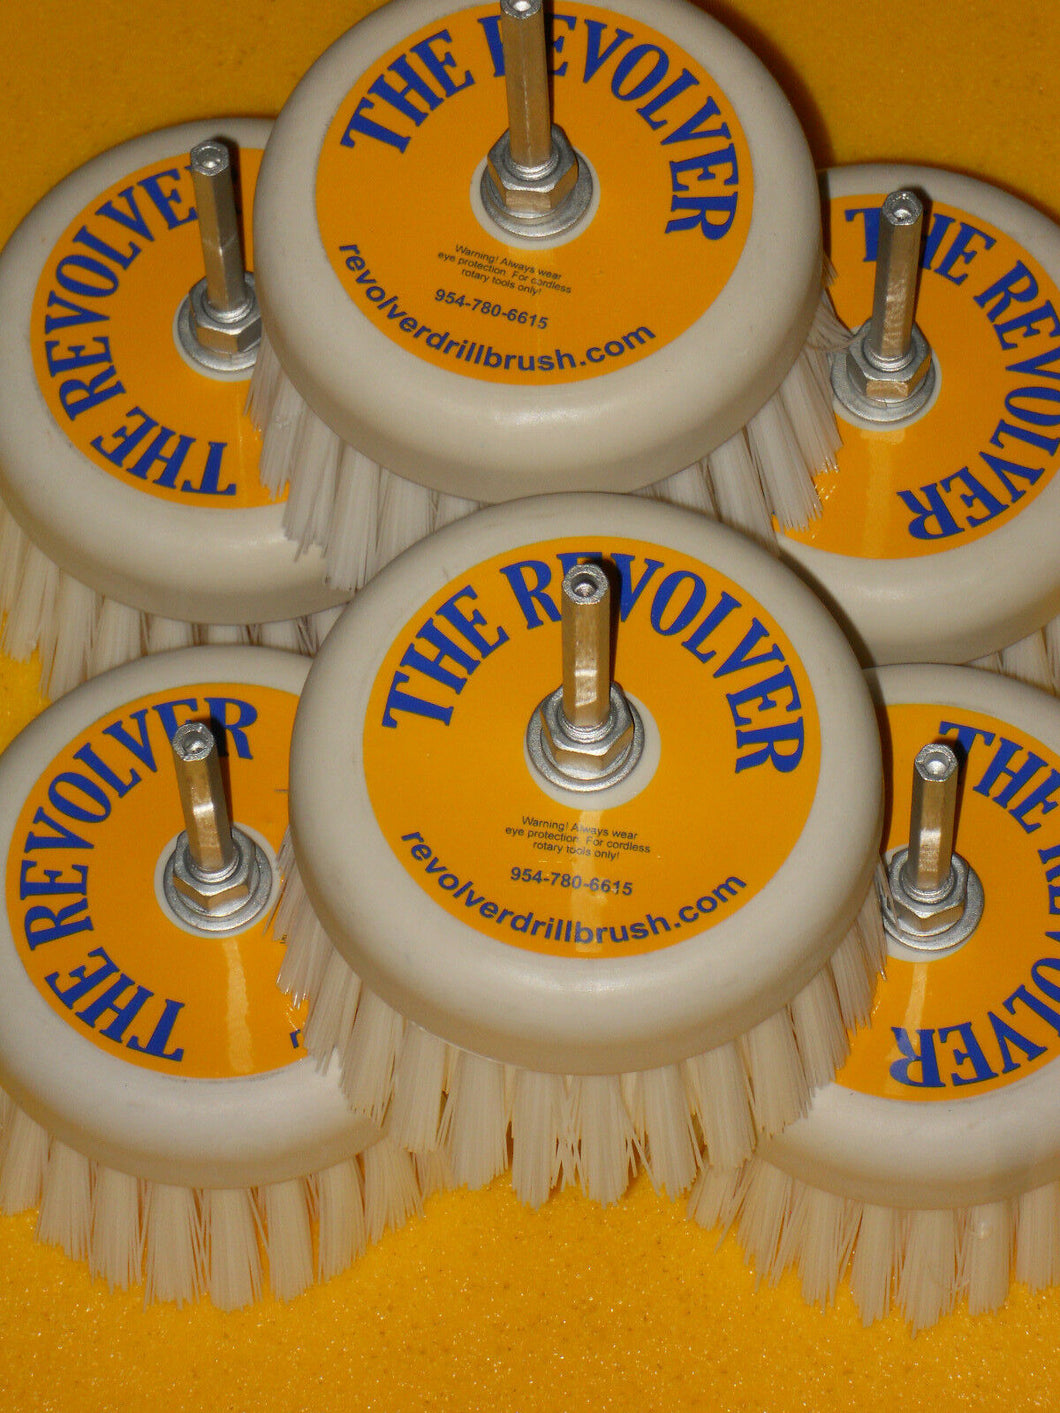 The REVOLVER DRILL BRUSH®-POWER SCRUB SIX PACK